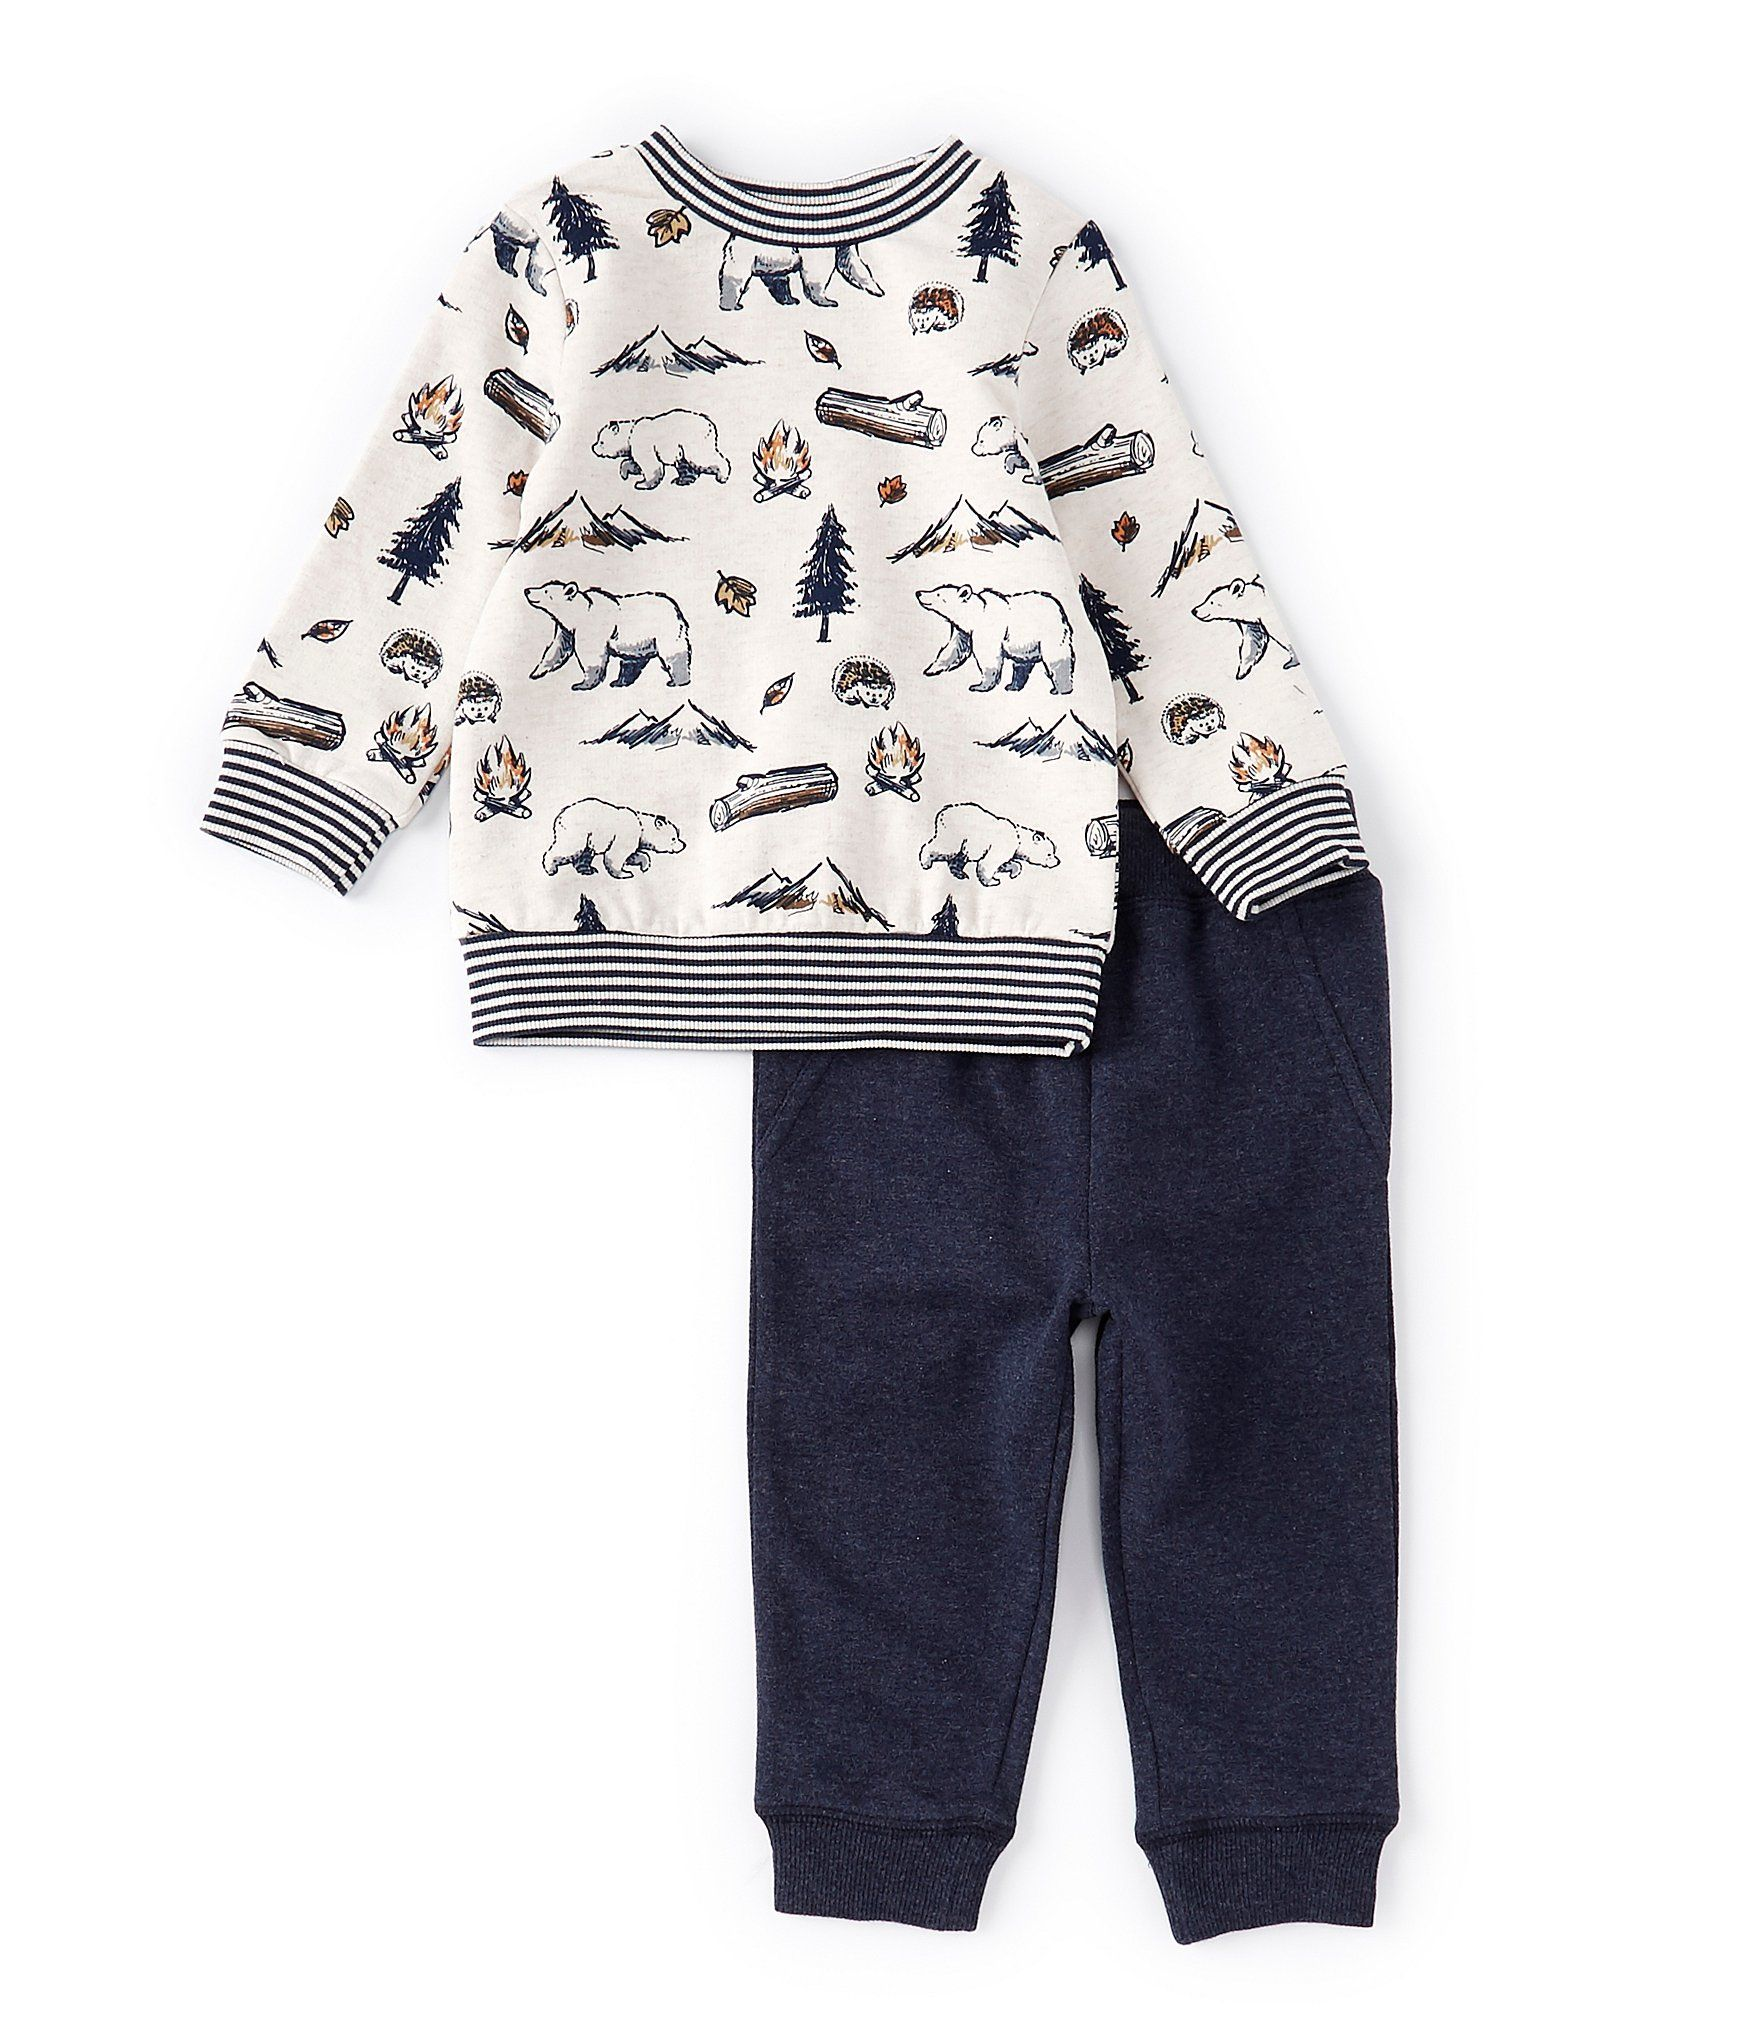 Little Me Baby Boys Pant Set Pants Layette Sets Clothing, Shoes & Jewelry